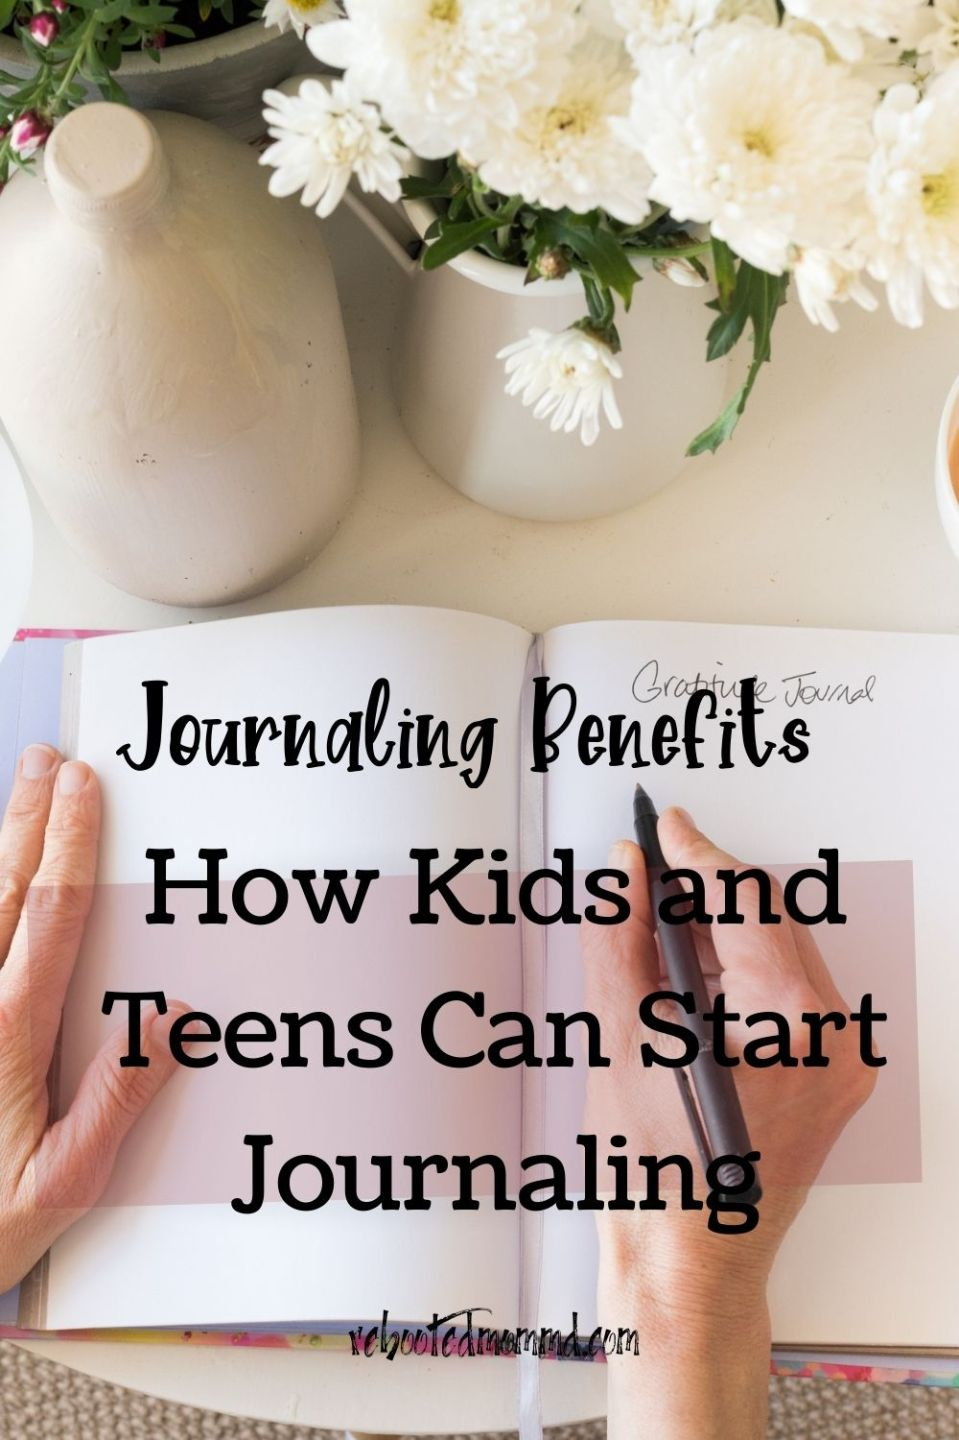 How Kids and Teens Can Start Journaling